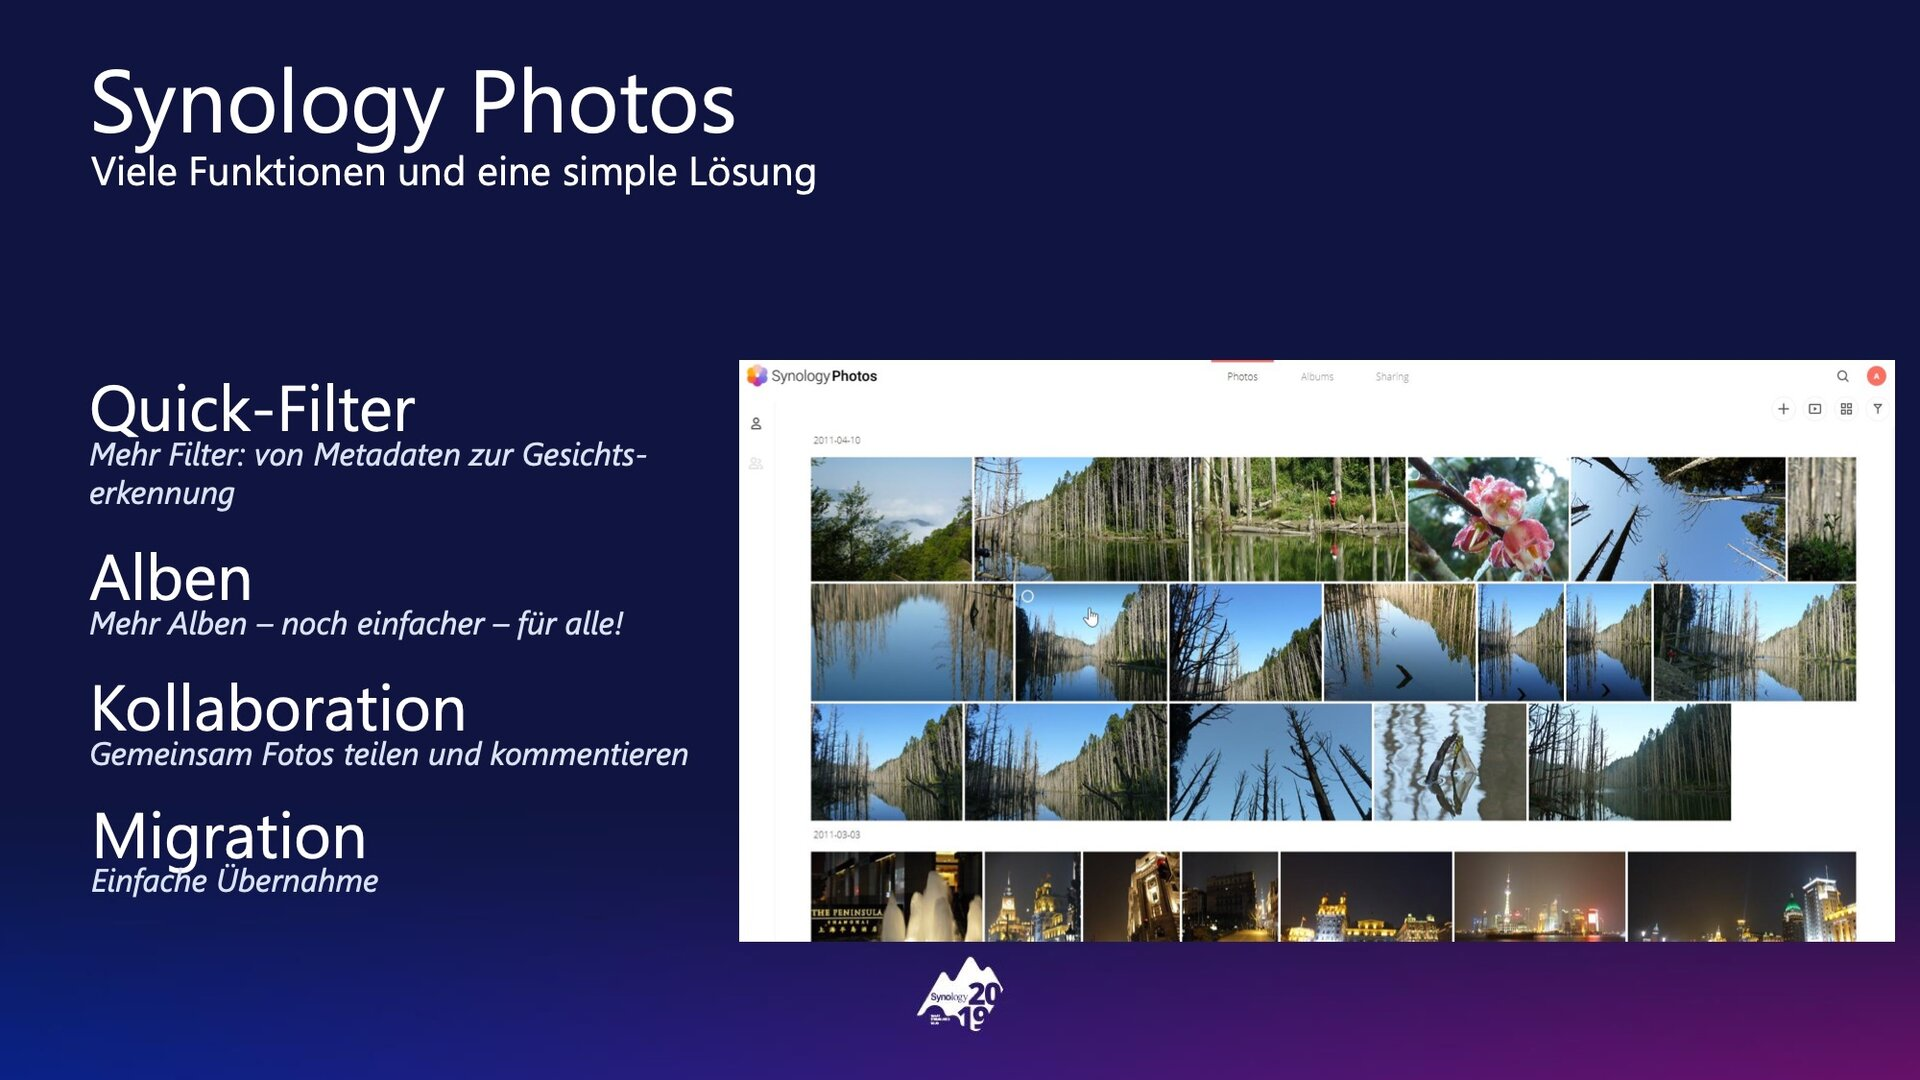 DSM 7.0: Synology Photos